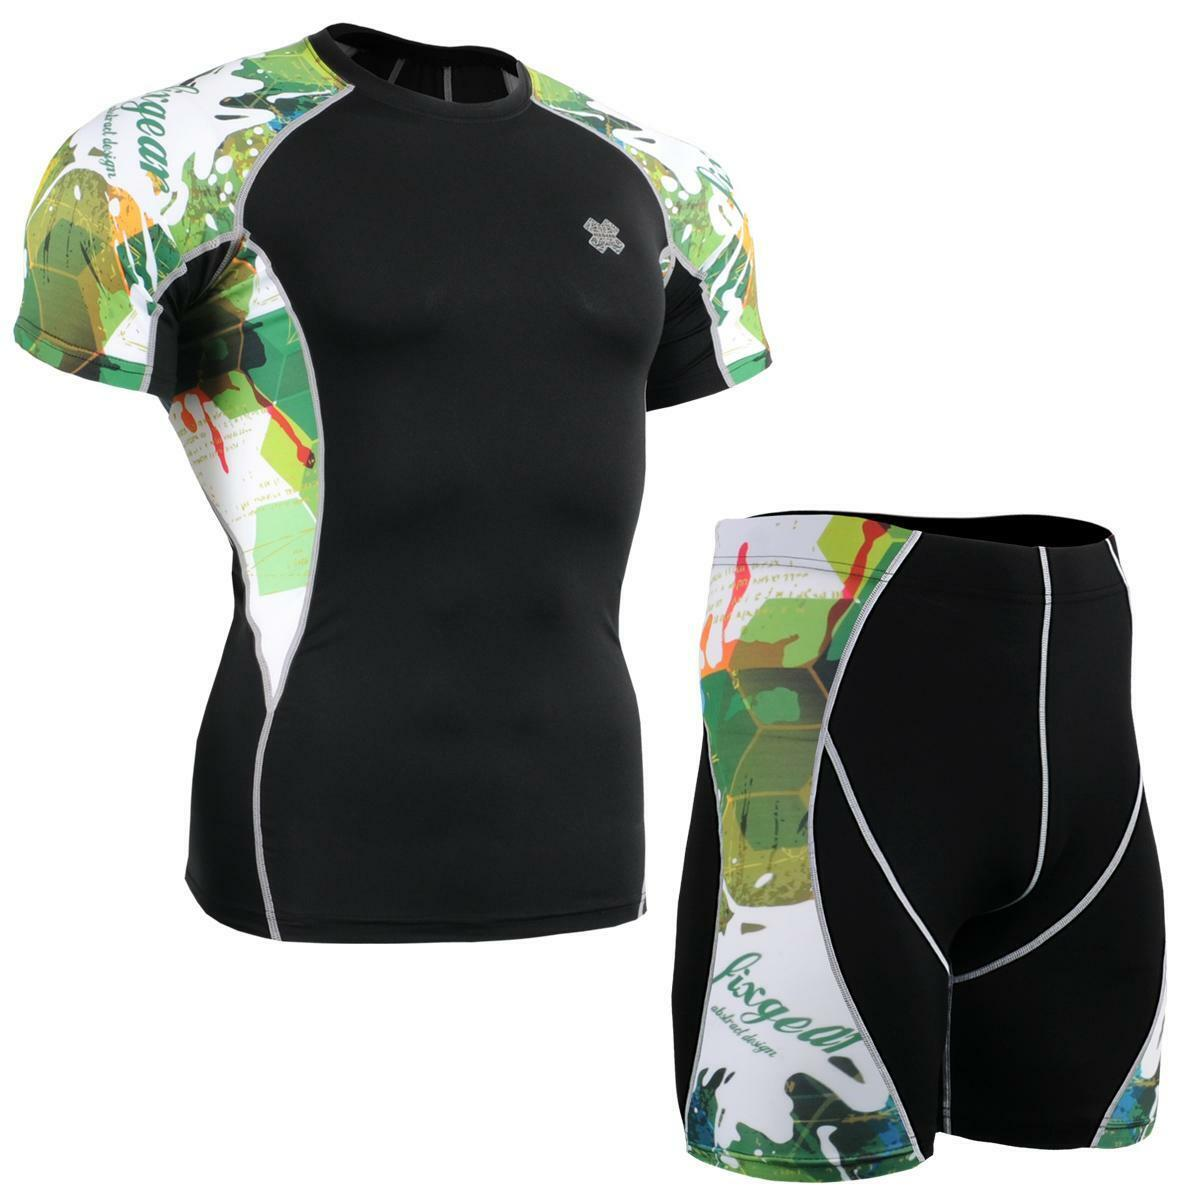 FIXGEAR C2S P2S-B47 SET Compression Shirts & Shorts Skin-tight MMA Training Gym